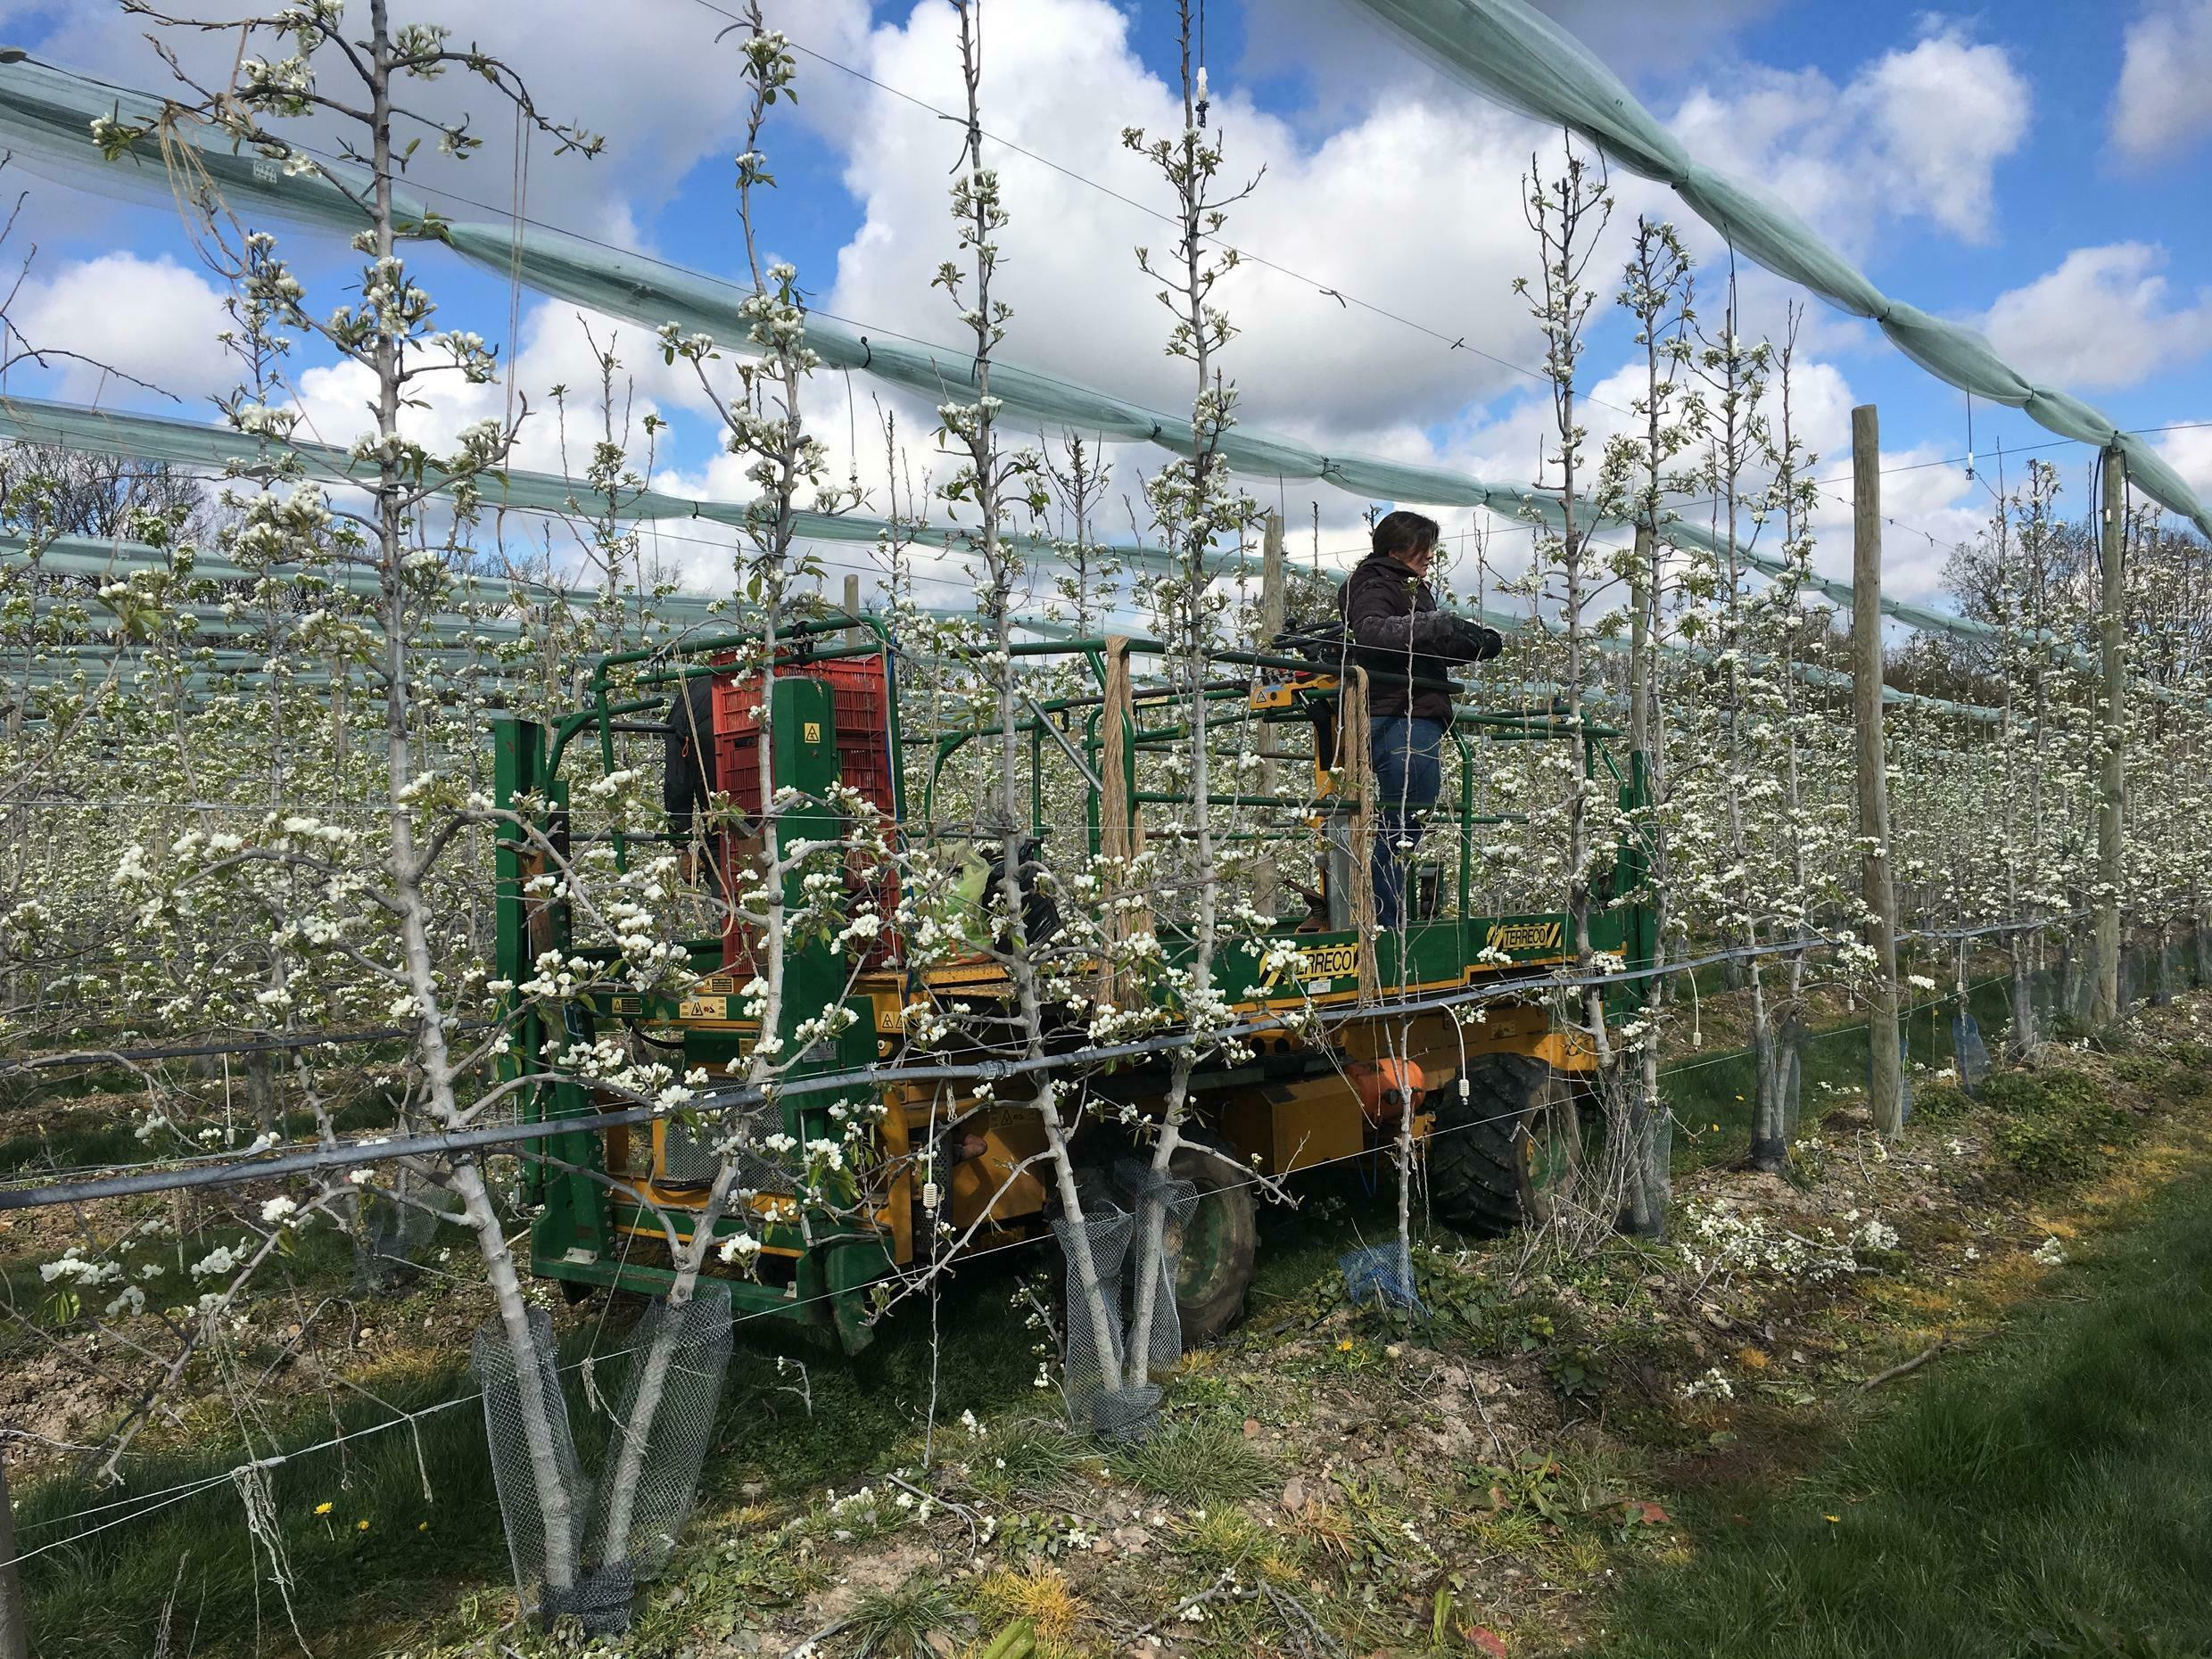 Workers at La Morinière tie up the apple trees to keep them straight